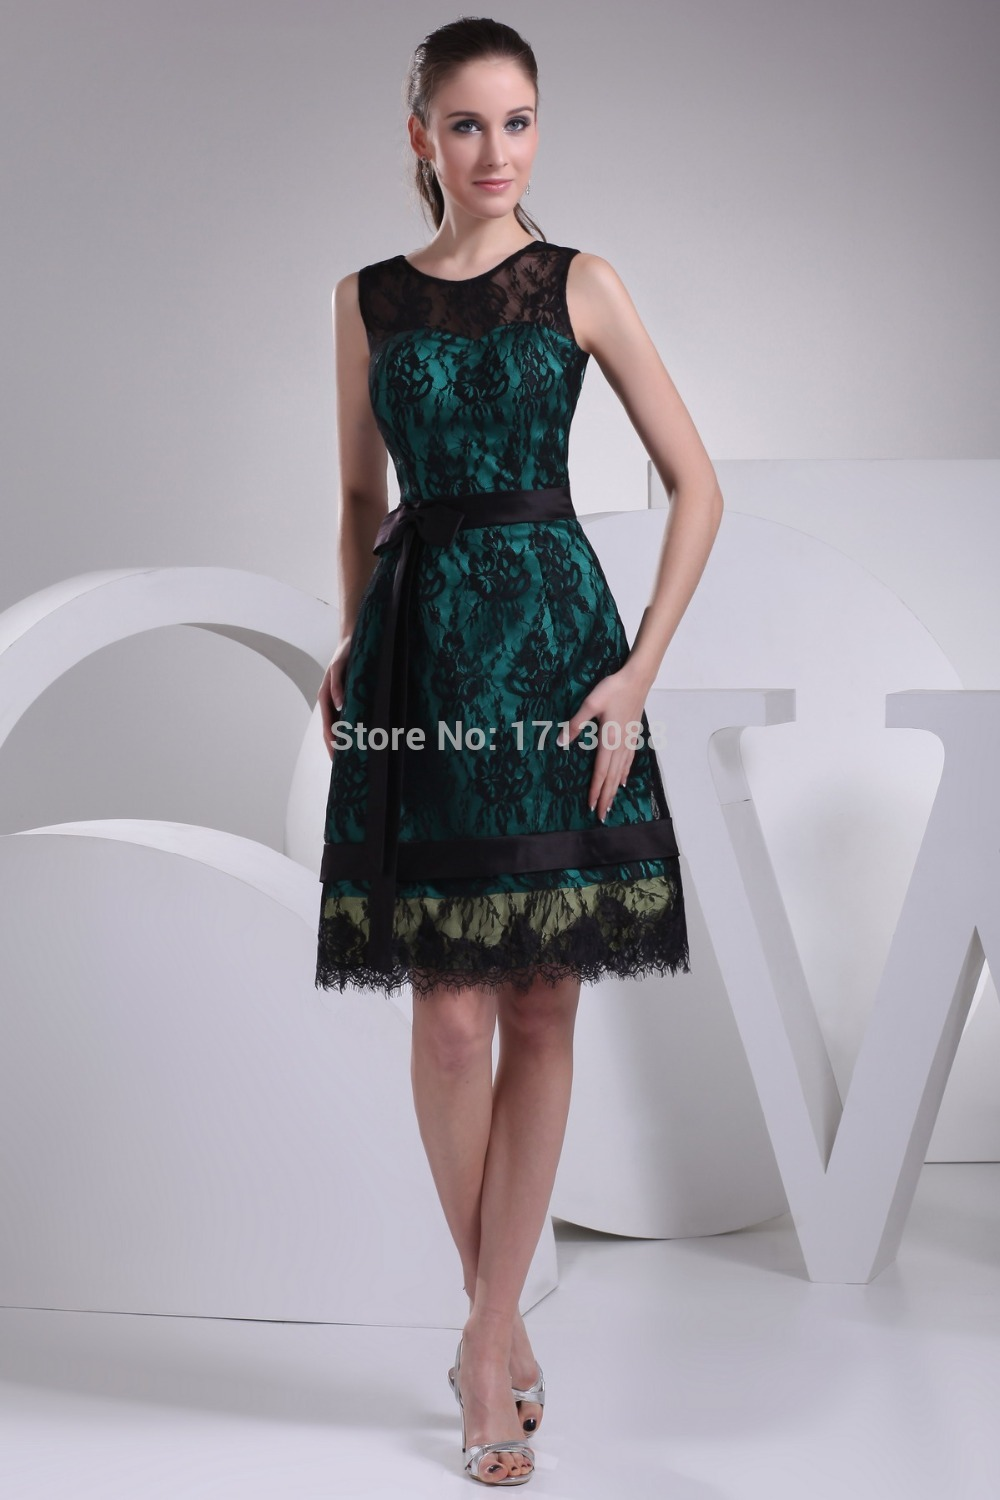 Casual mother of the bride dresses with sleeveless knee for Mother of the bride dresses casual wedding